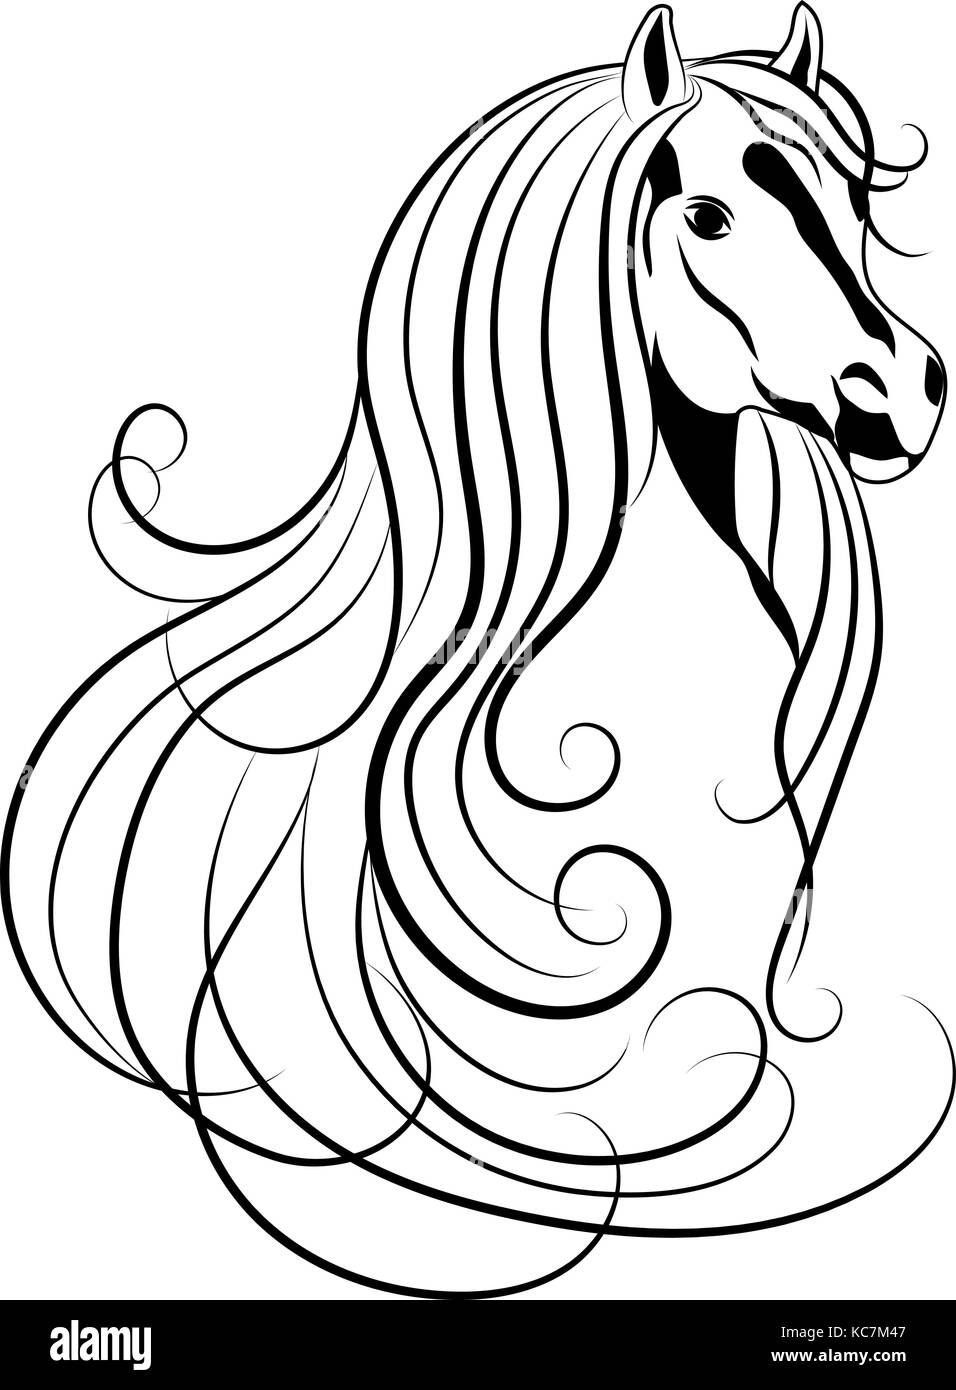 mustang black and white stock photos images alamy 1965 Mustang Clothing vector illustration of horse head in black and white style stock image